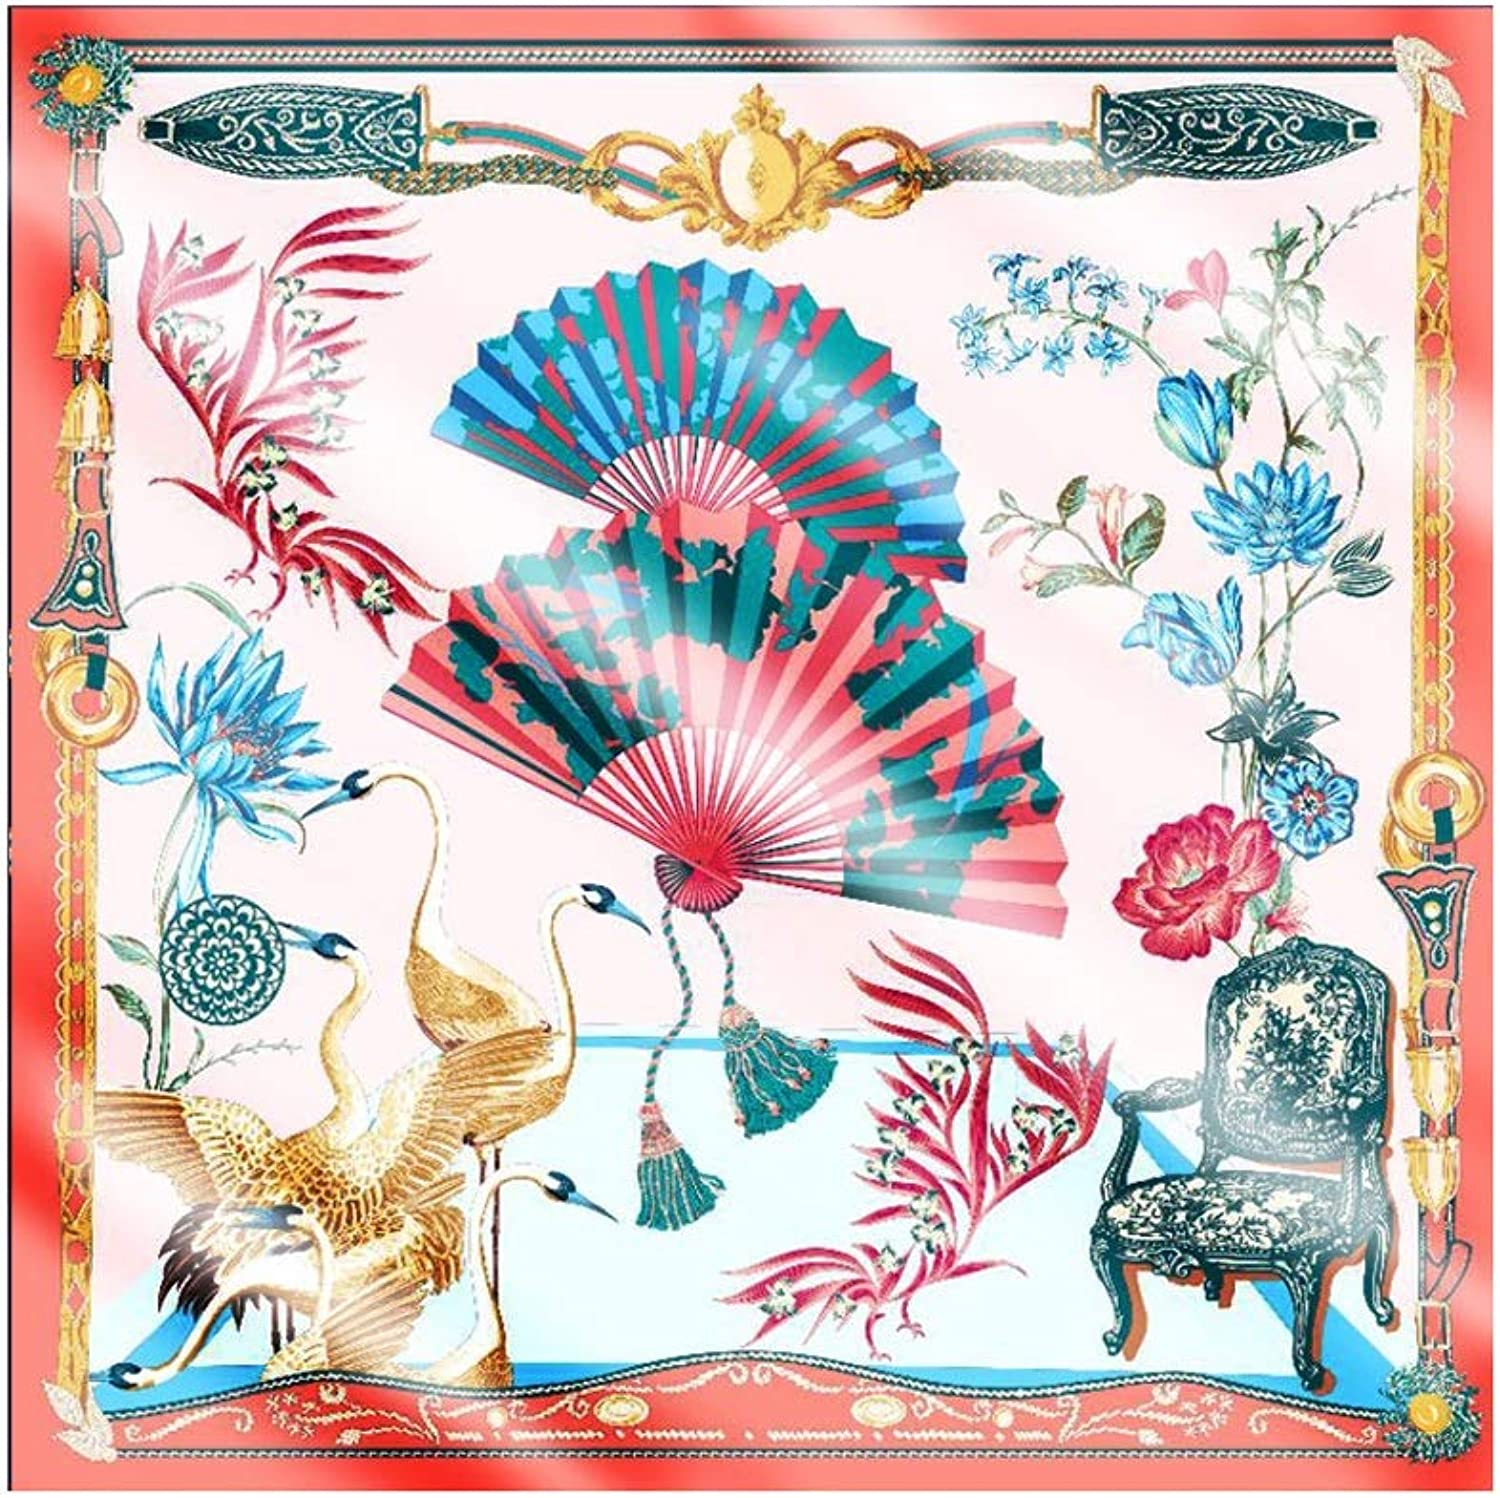 Hong Tai Yang Women's Scarves, Silk Scarves, Oversized, Large Square Scarf, Shawl The Most Beautiful Gift (color   C)